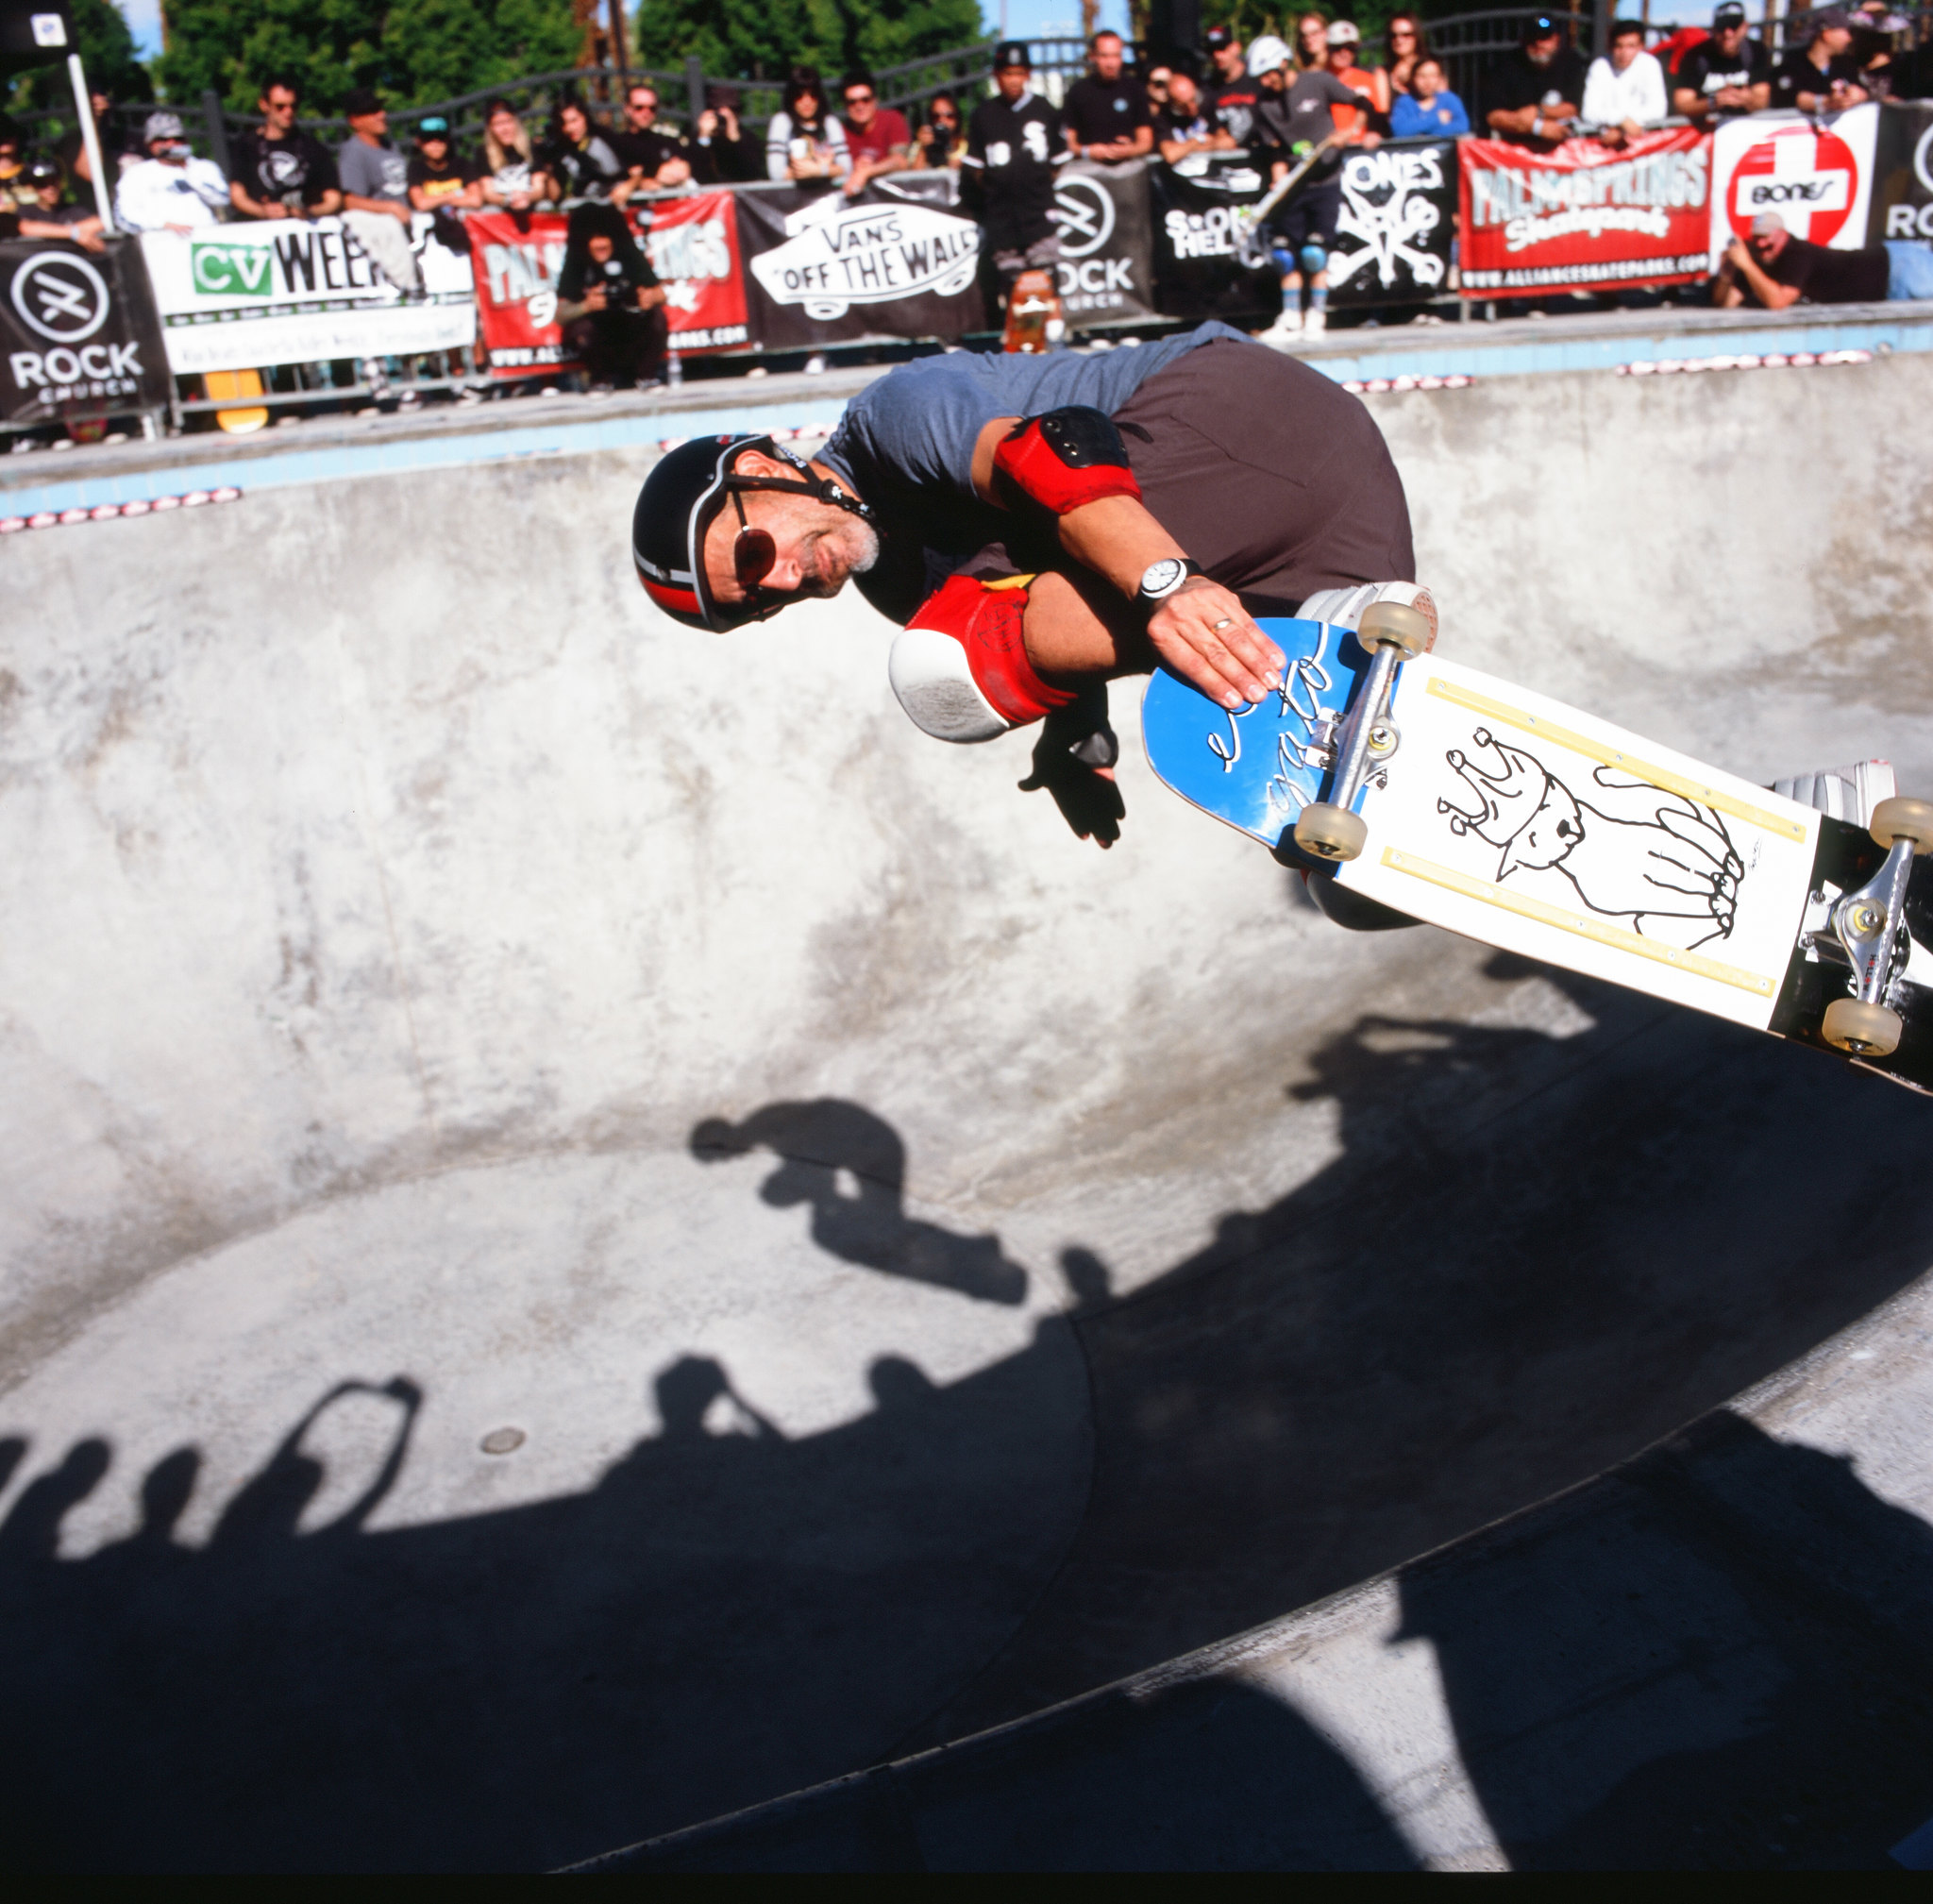 ElGatoClassic-photography-Skateboard-eddie elguera-Palmsprings-Analog-hasselblad-120mm-joe-segre-05